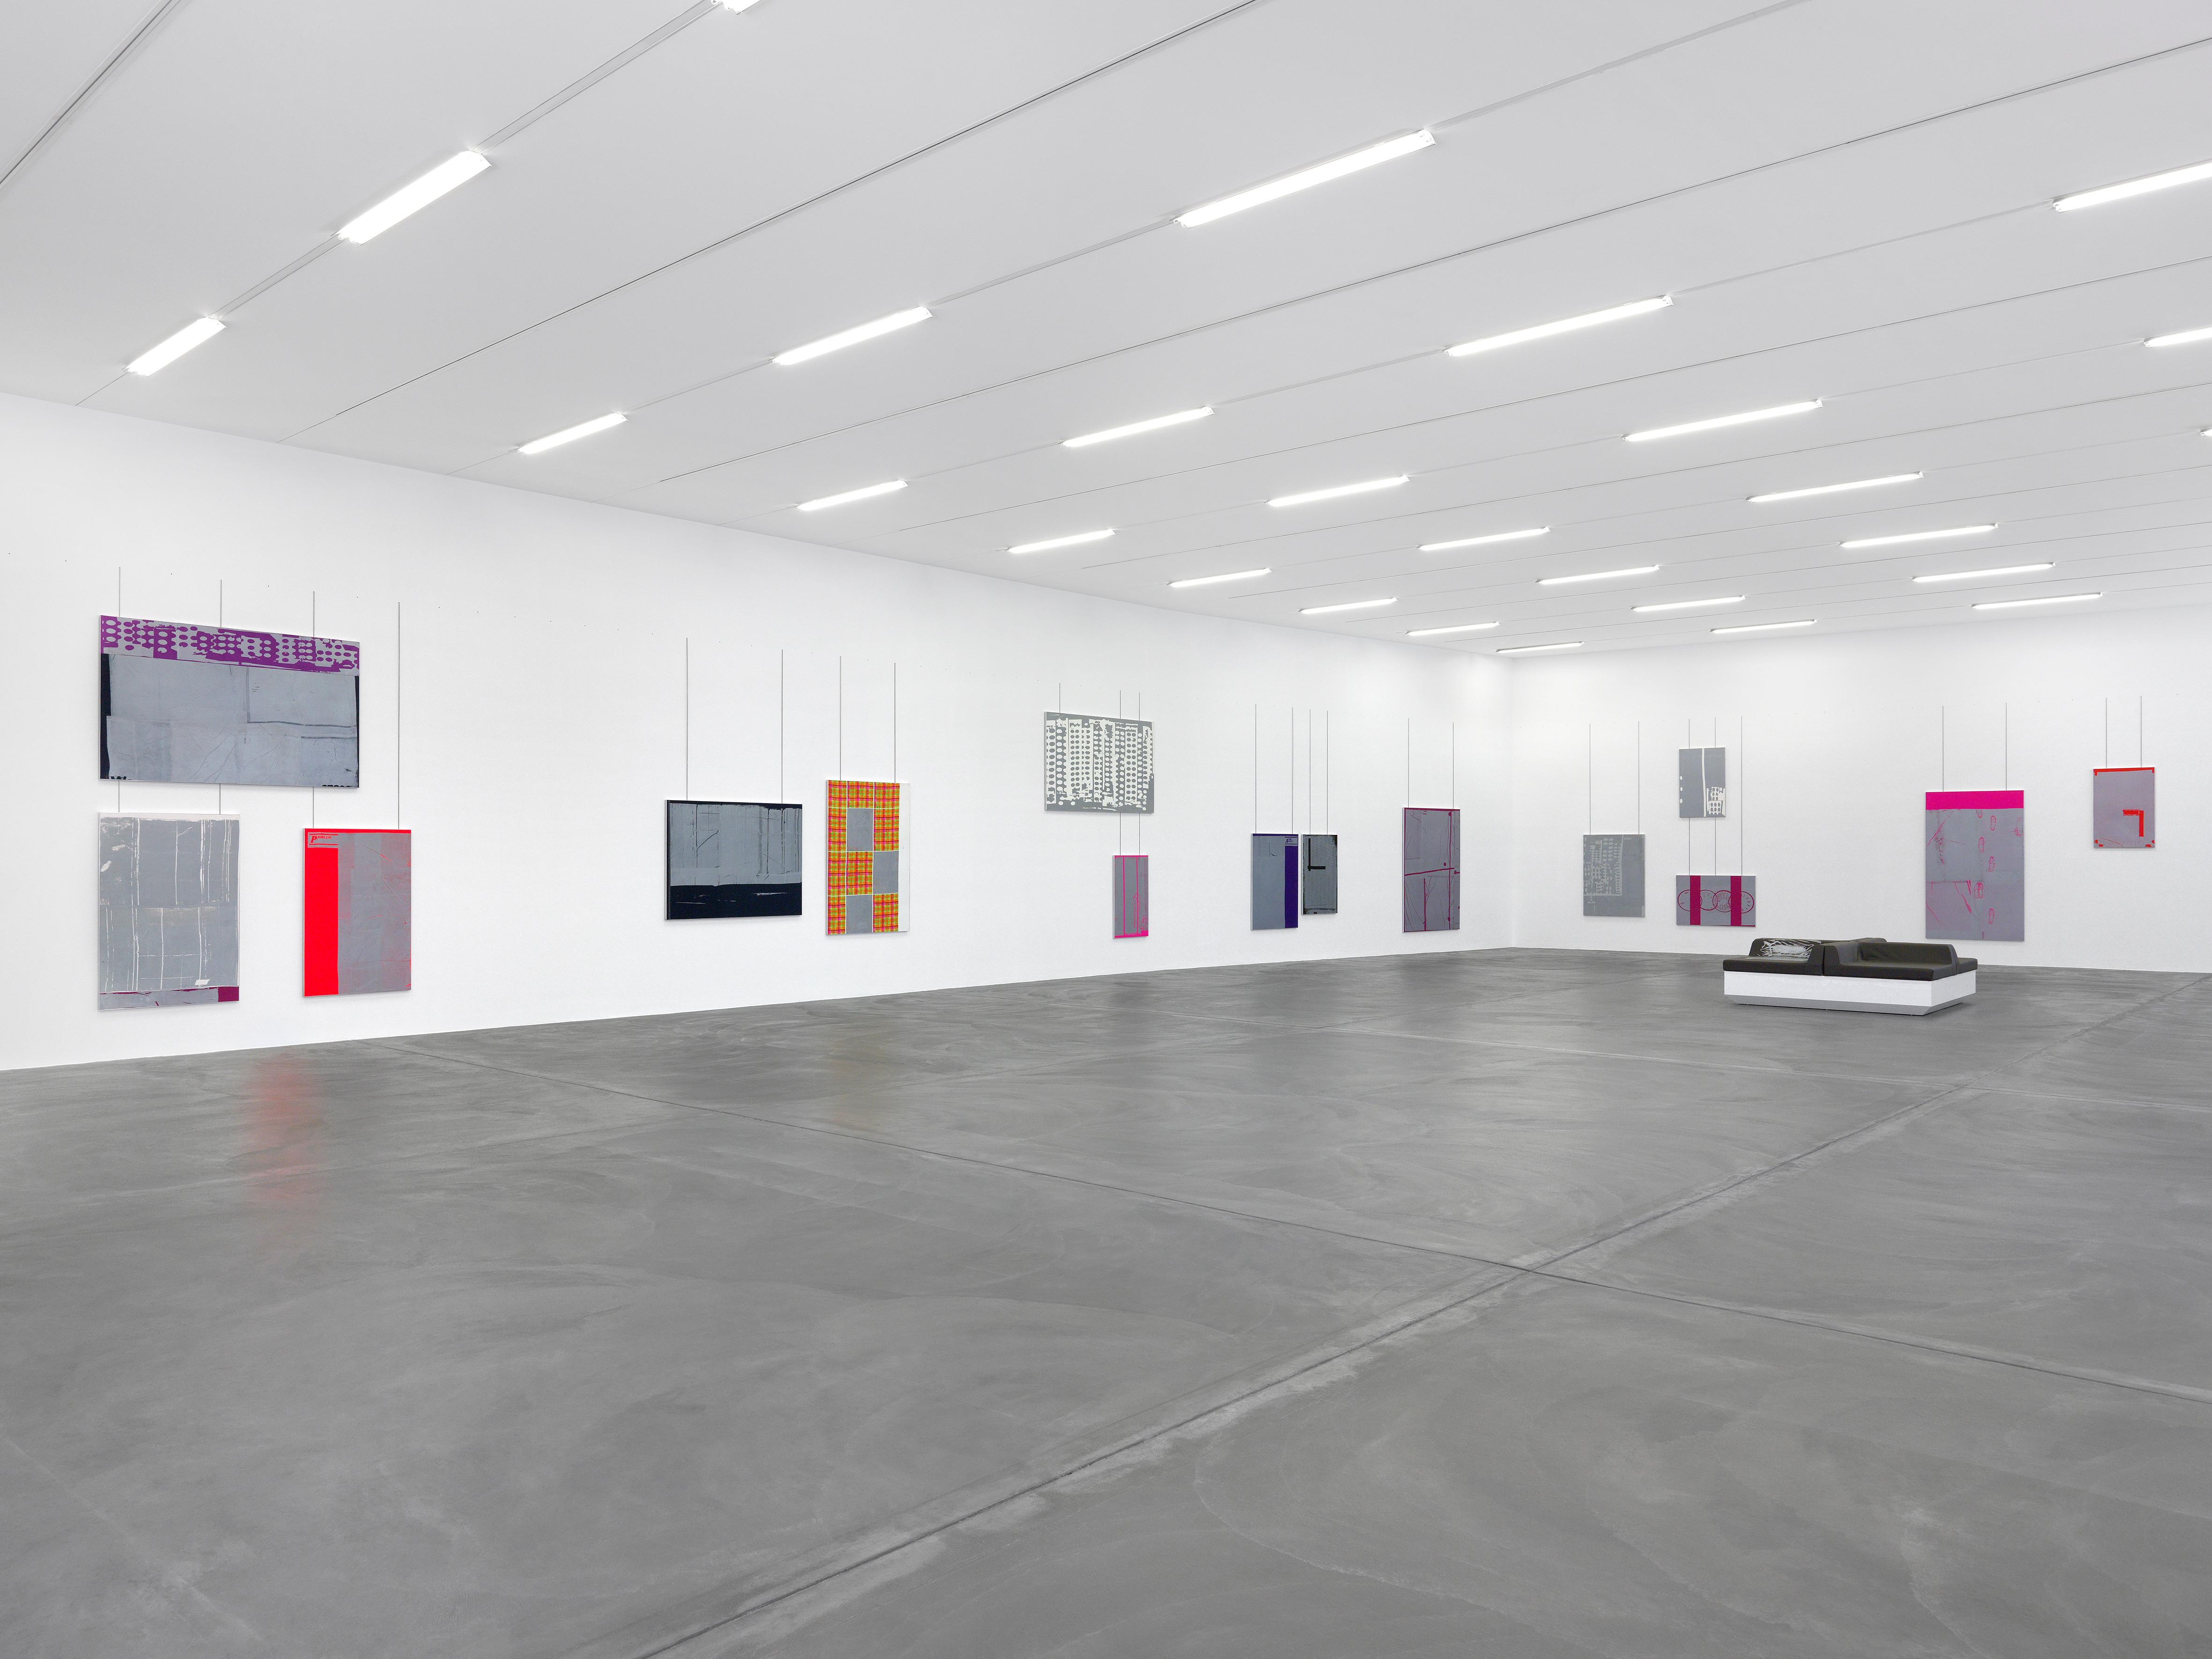 Installation View, Minuet of Manners, Kunsthalle Zürich, 2021, courtesy of the artist and the gallery